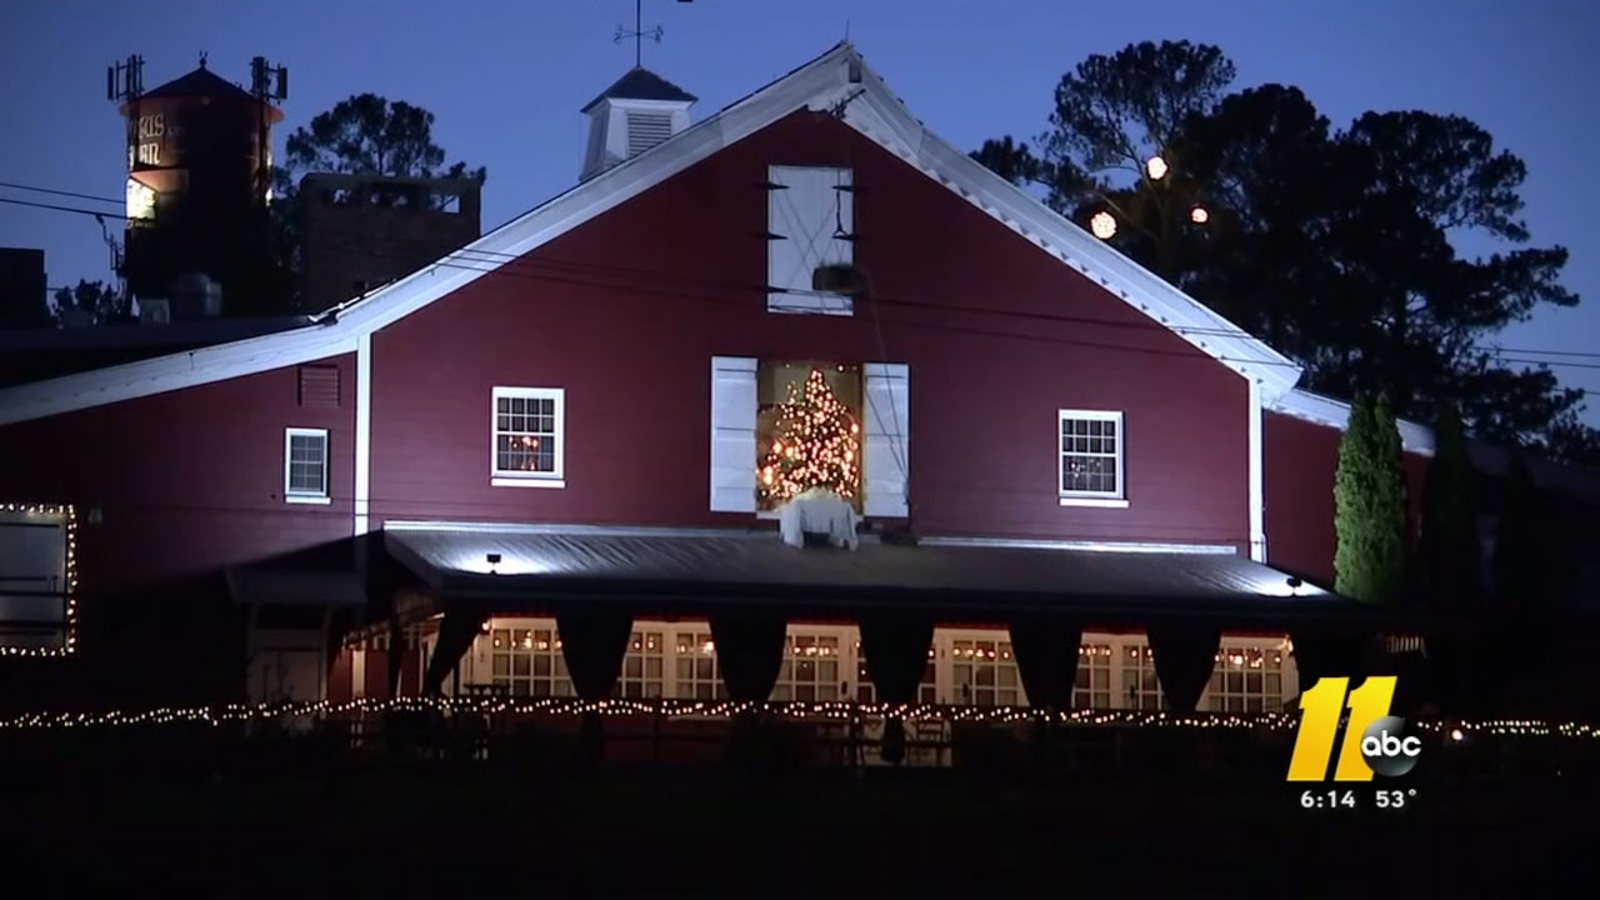 Angus Barn Steakhouse In Raleigh Draws Inspiration From